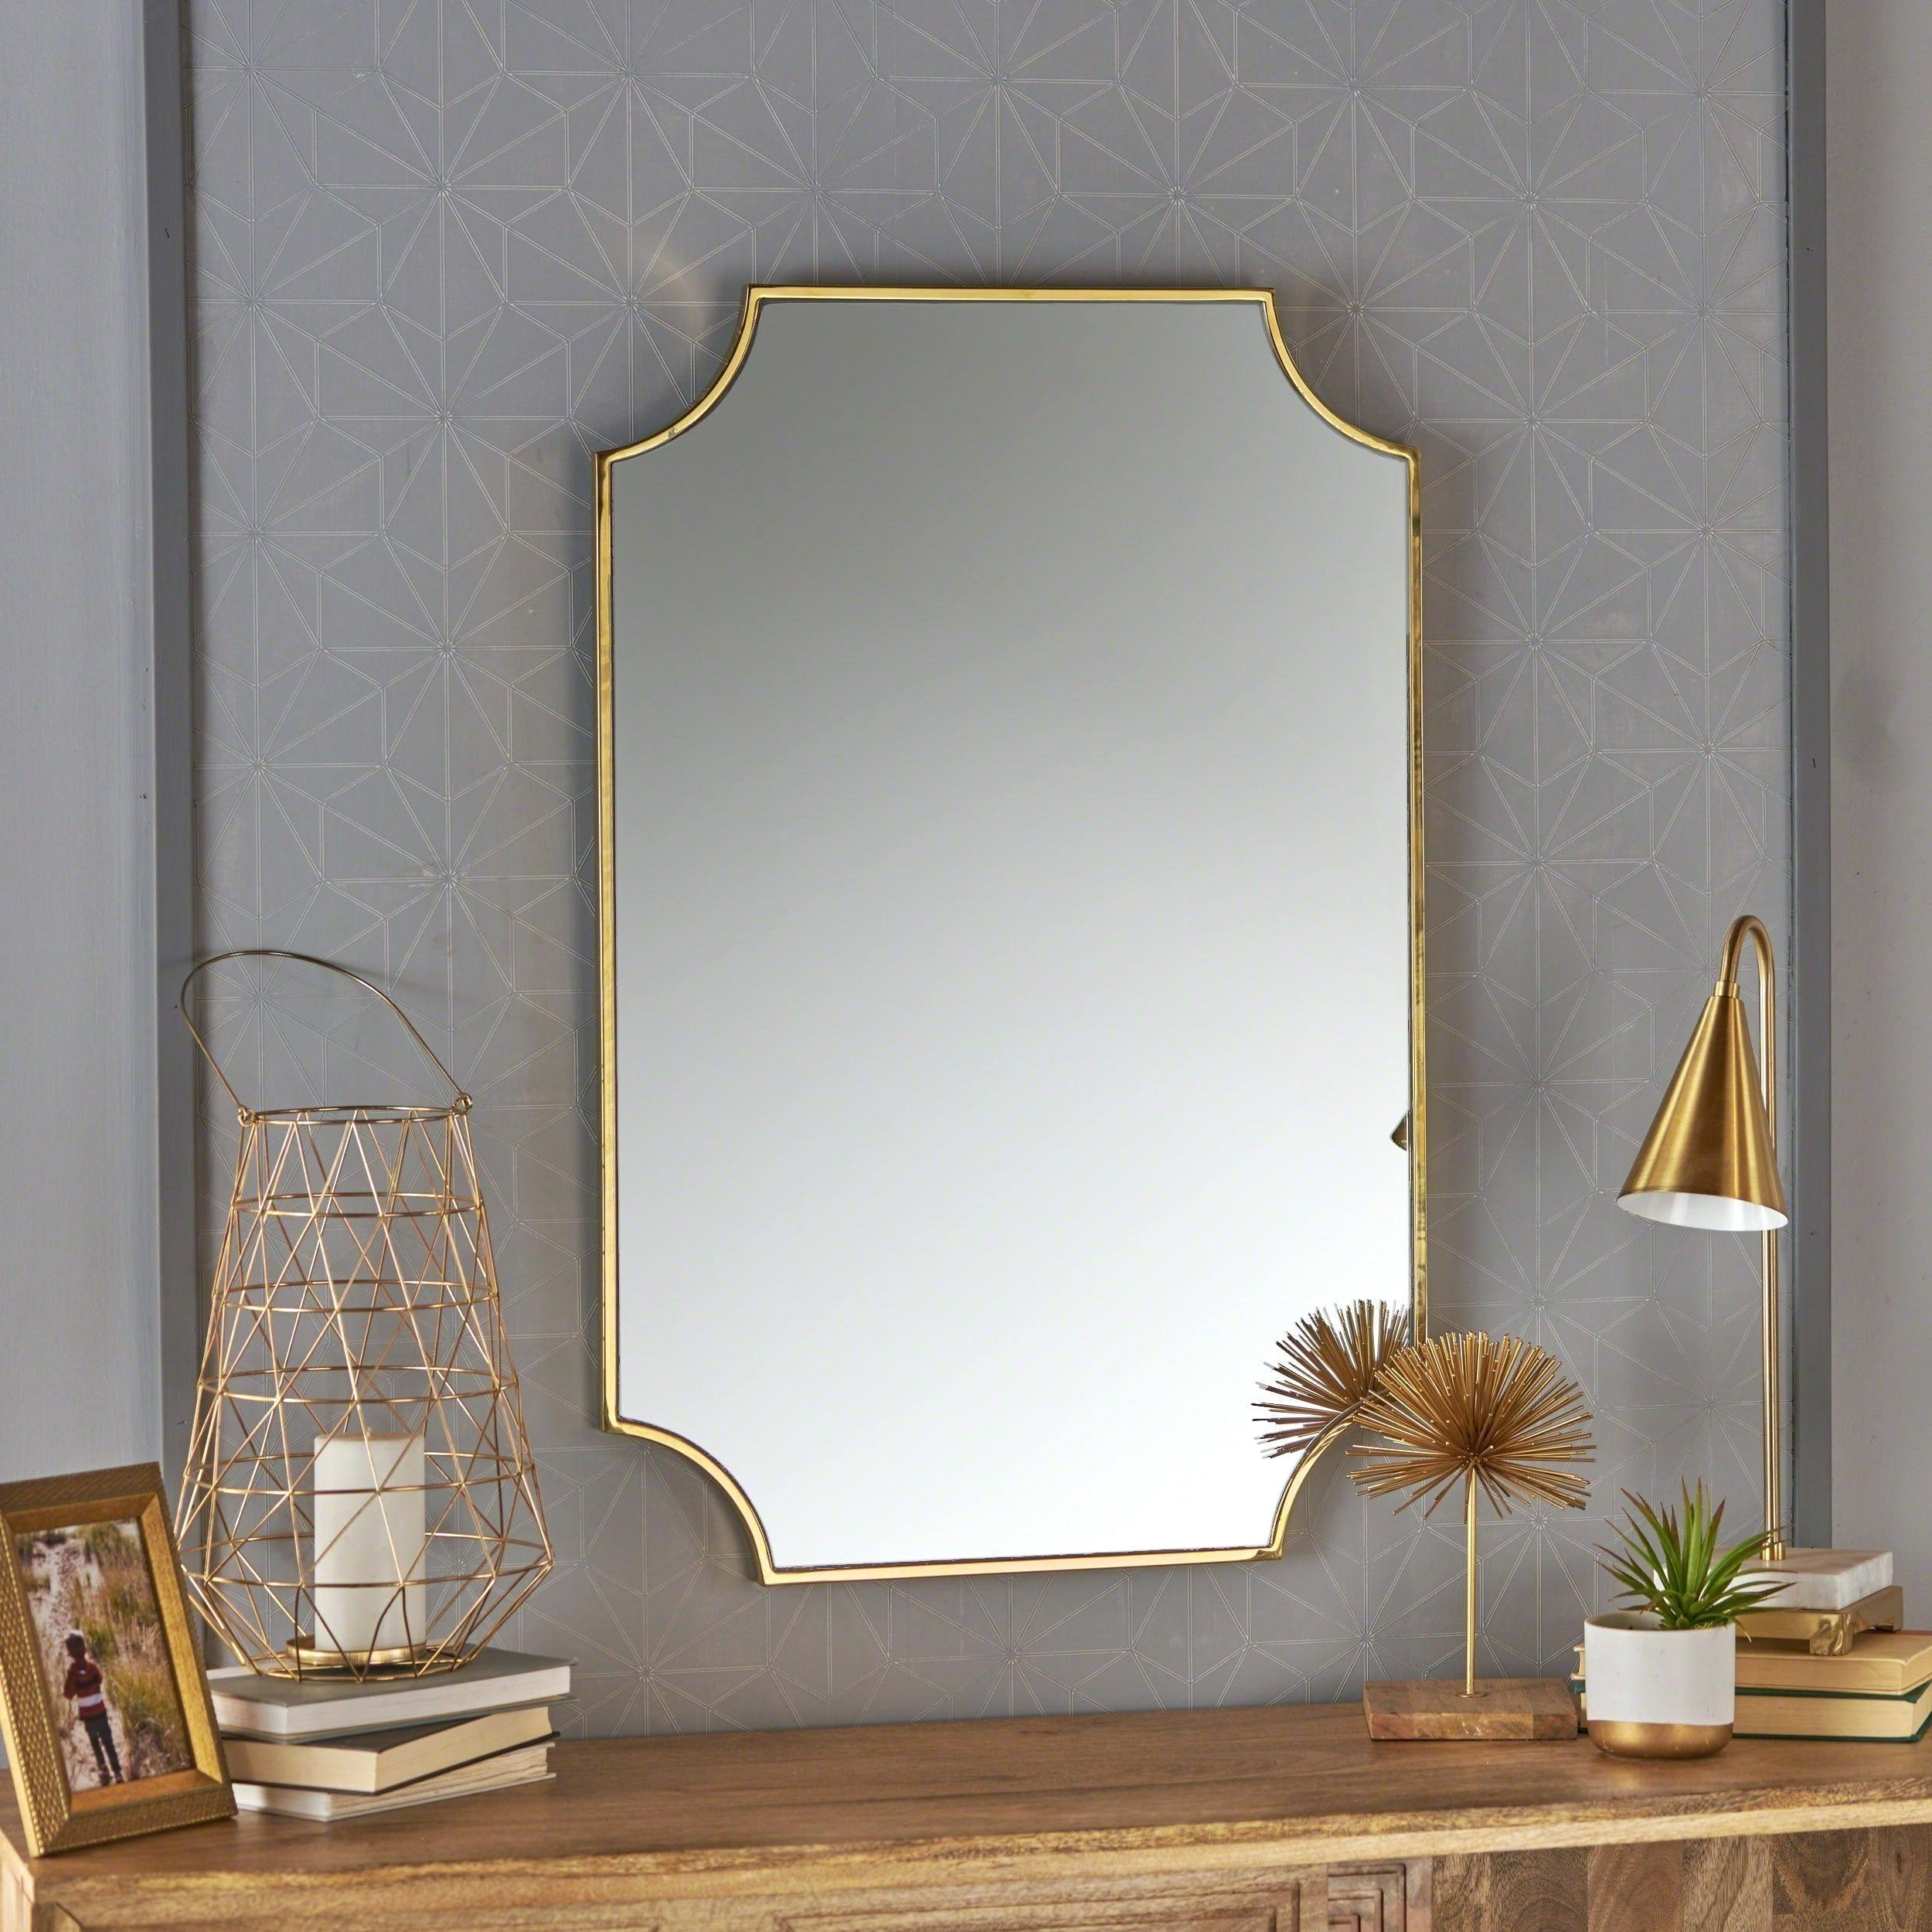 Decorative Wall Mirror Sets Throughout Well Known Large Decorative Wall Mirror Sets Small Mirrors For Living Room Gold (View 2 of 20)